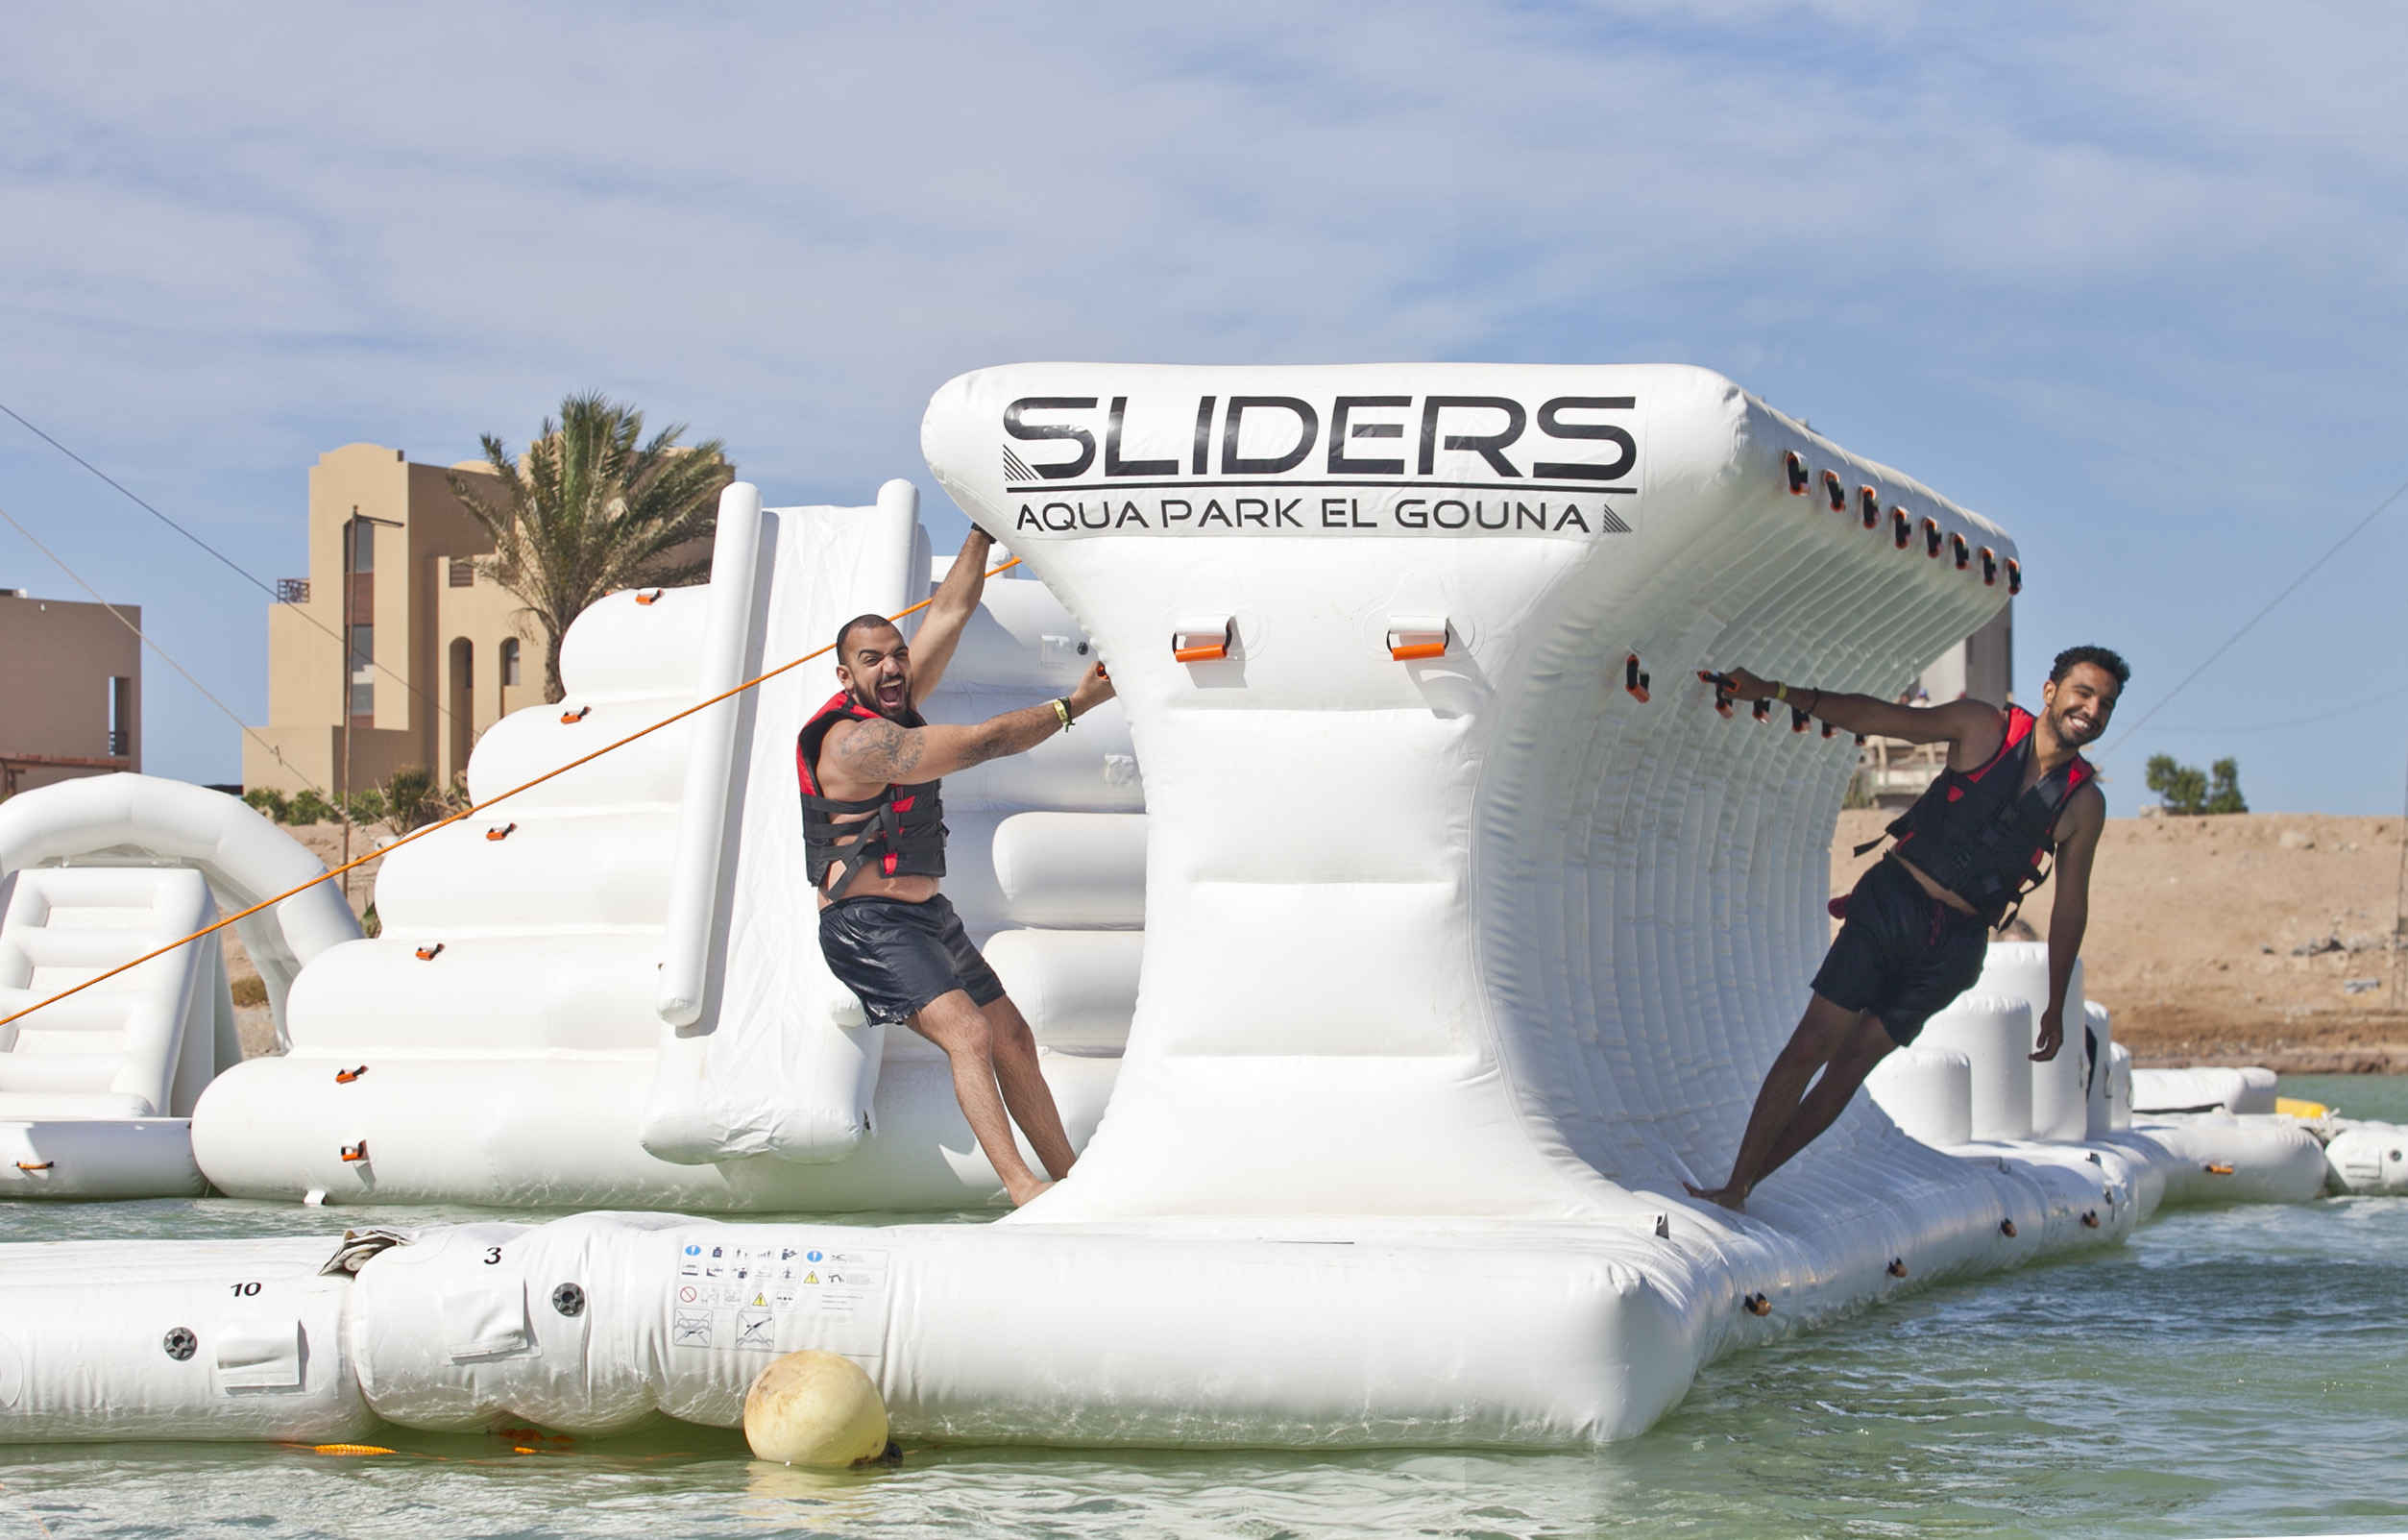 Sliders Aqua Park for all family and fun activities in El Gouna